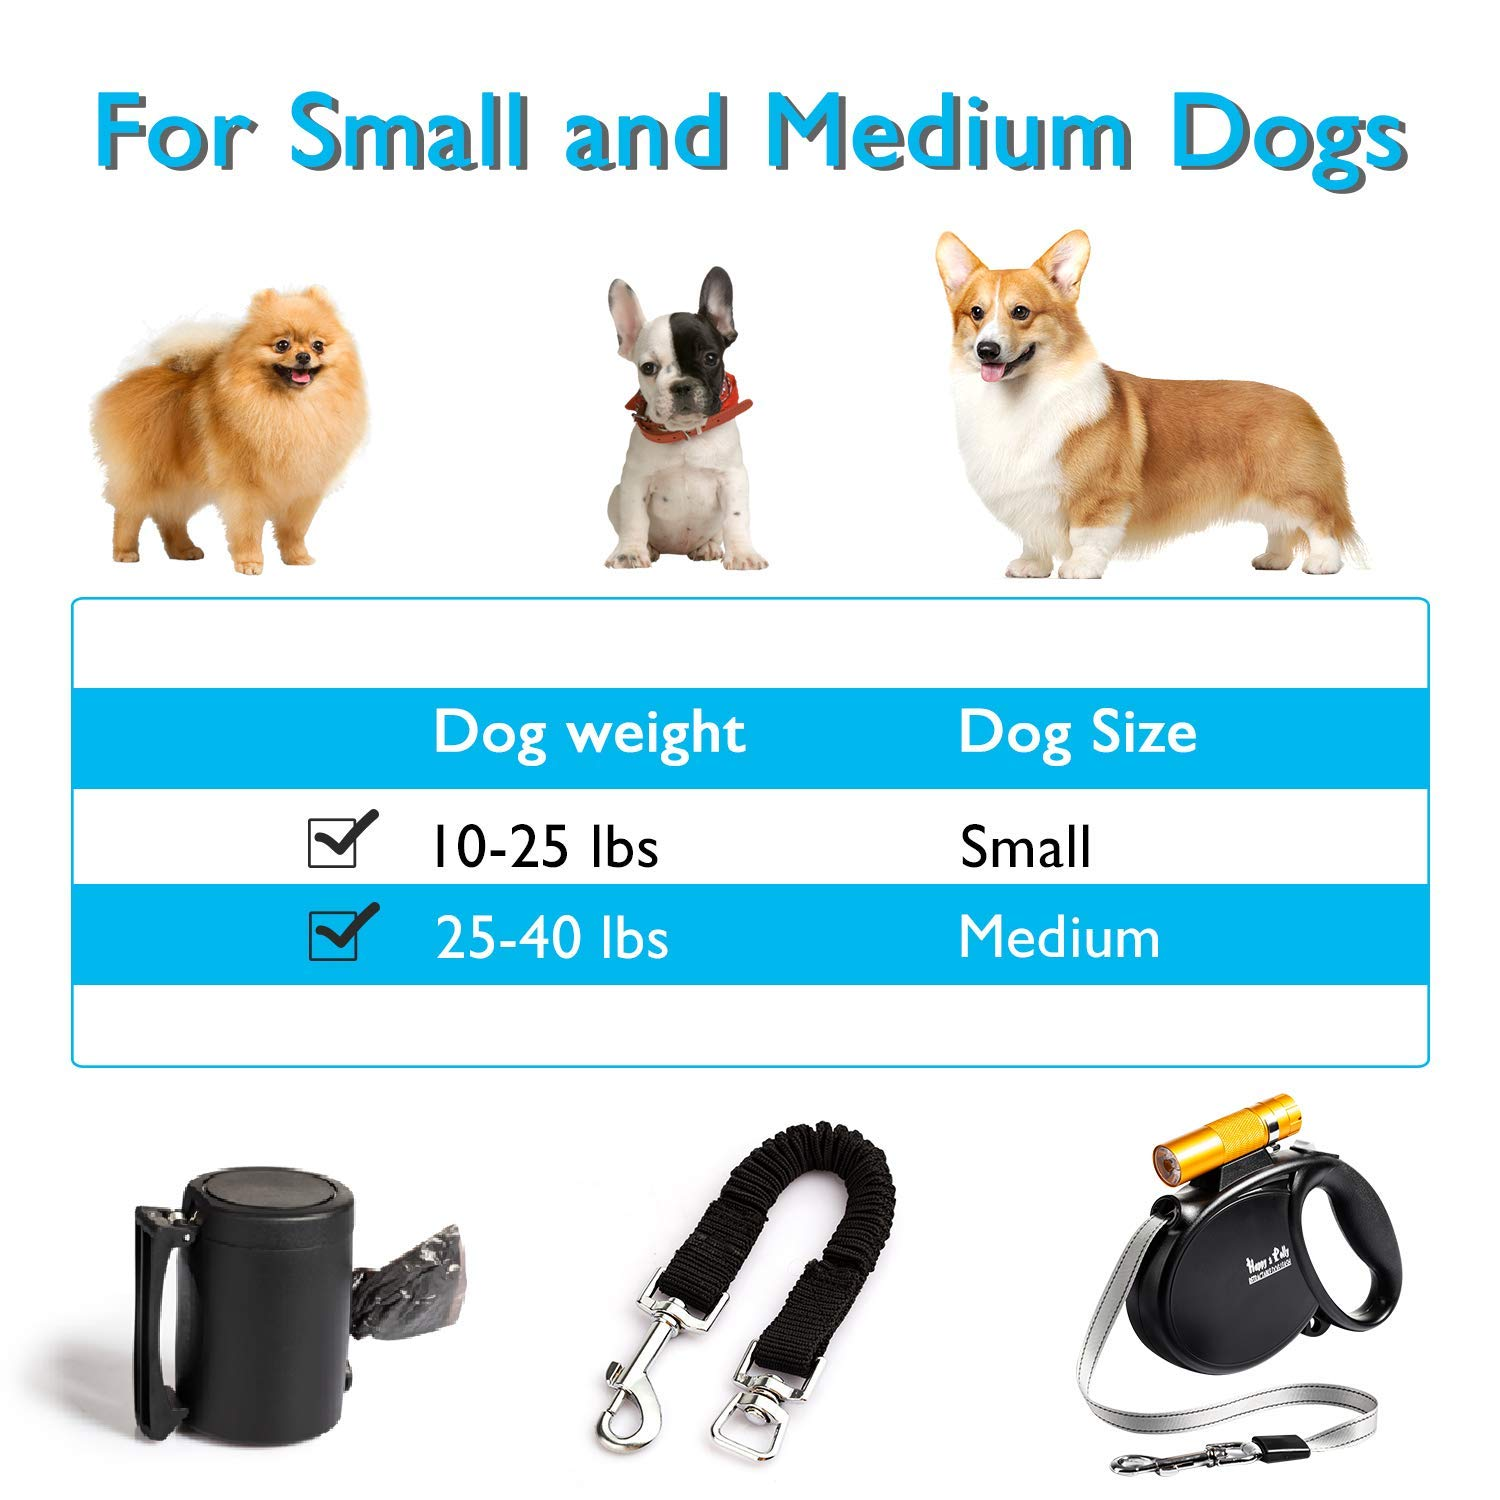 Happy & Polly 4 in 1 Dog Leash Retractable Dog Leash 16.4 ft Dog Walking Leash with Flashlight Detachable/Protective Bungee Leash/Magic Box Dispenser Poop Bags for Small Medium Dogs, Golden